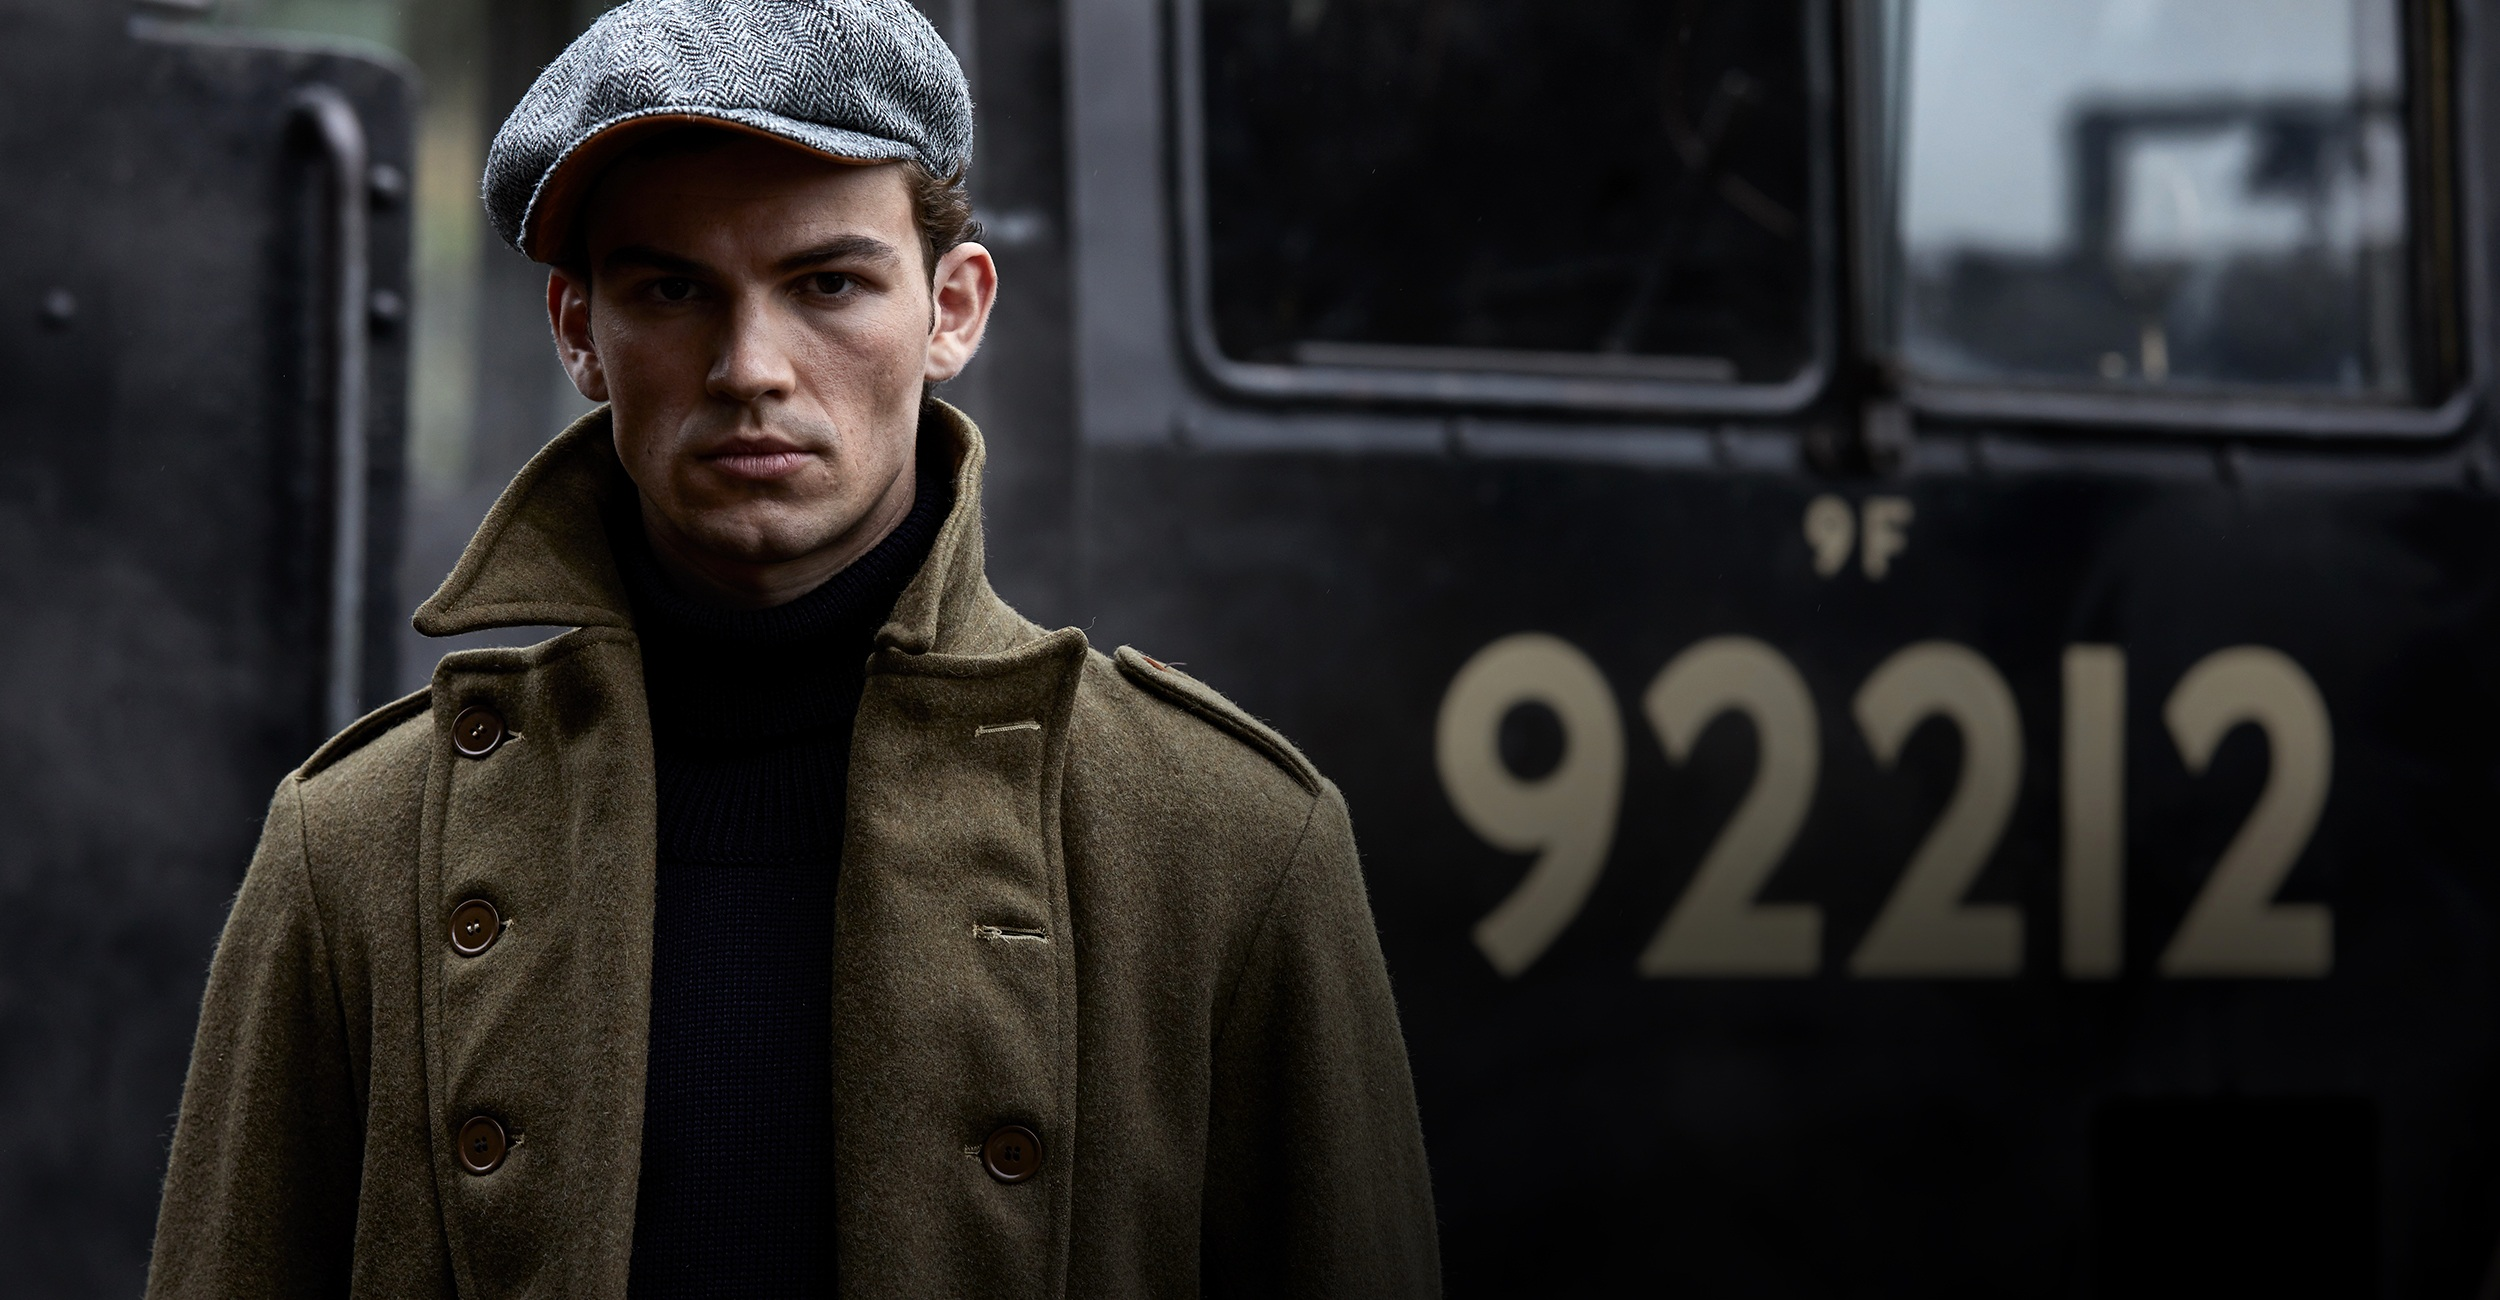 &SONS CLOTHING - A nod to the Peaky Blinders